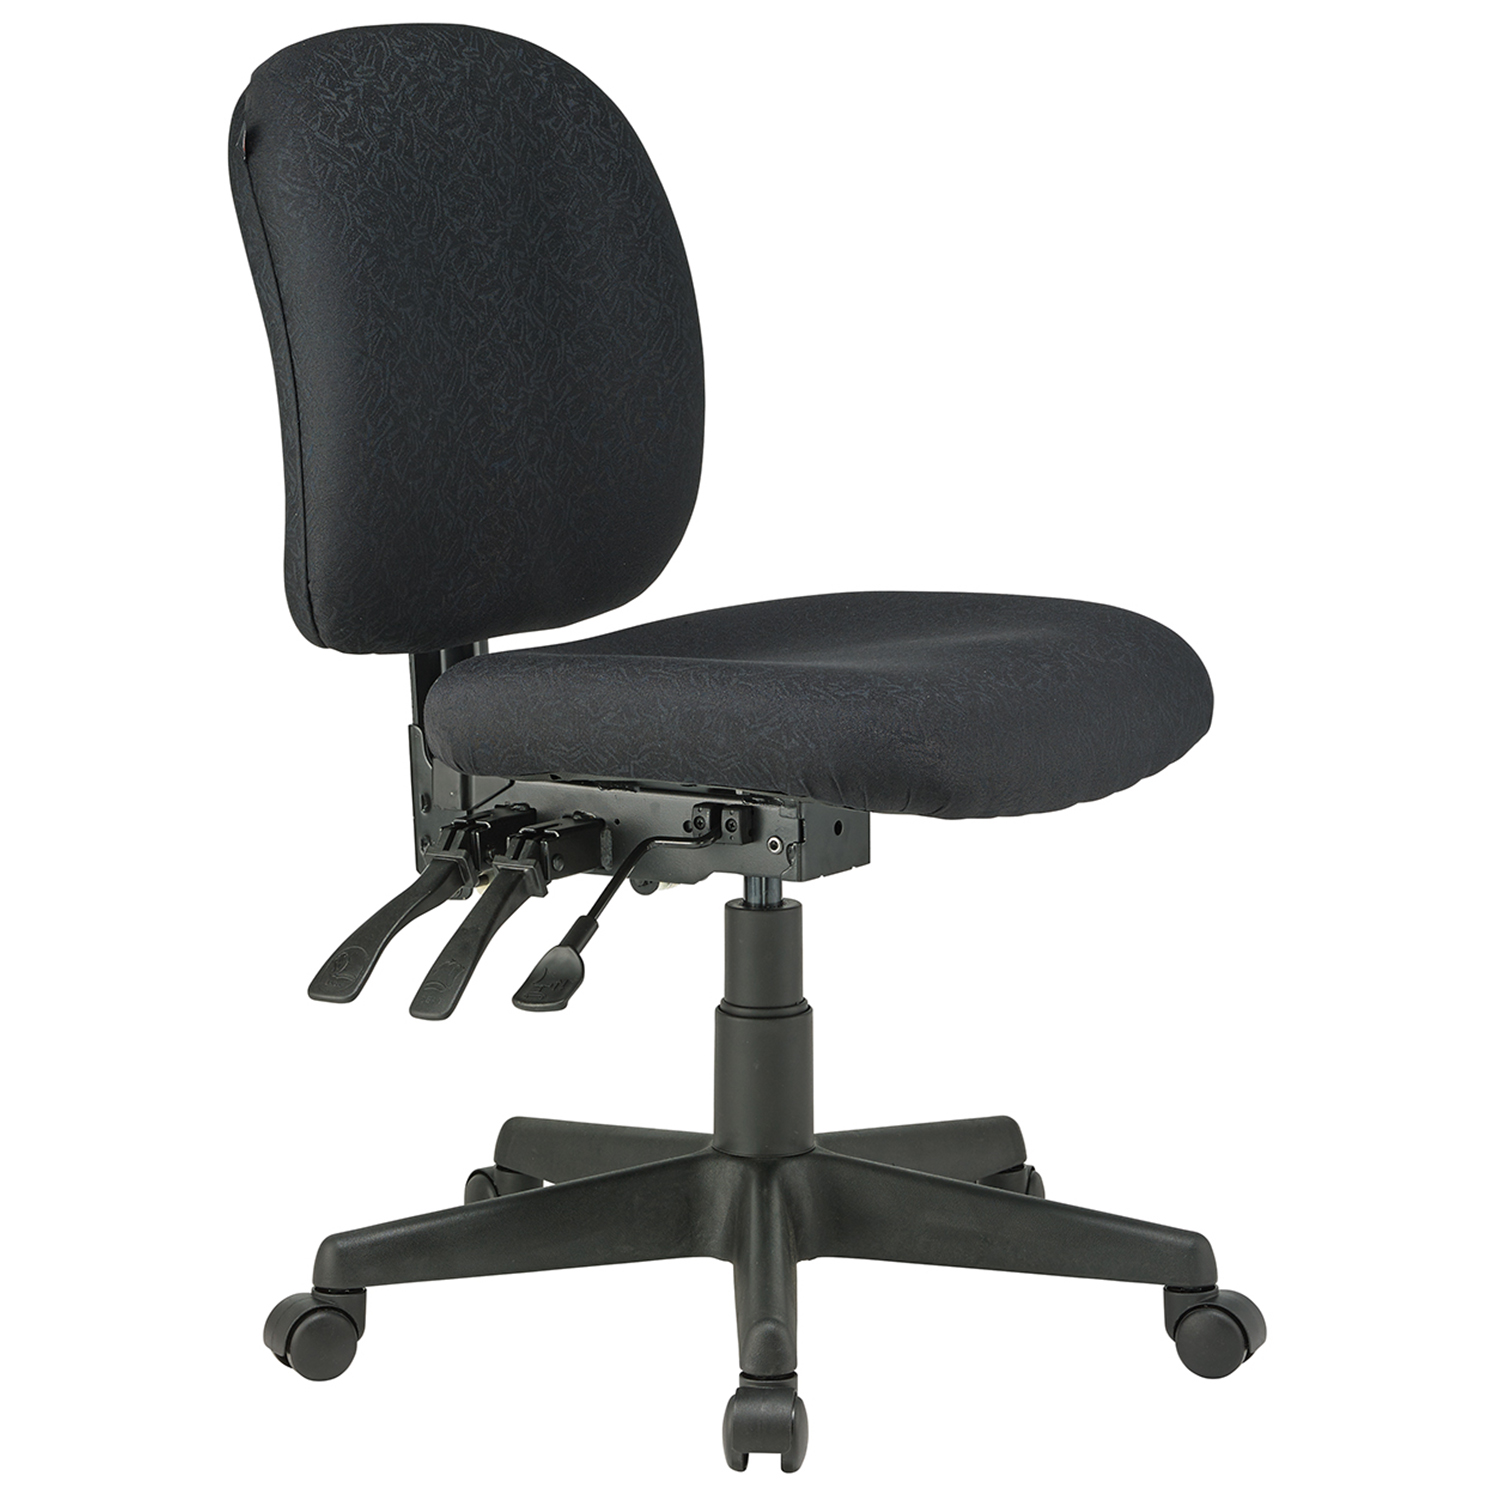 Workpro Chair Workpro 1000 Series Mobility Multifunction Task Chair